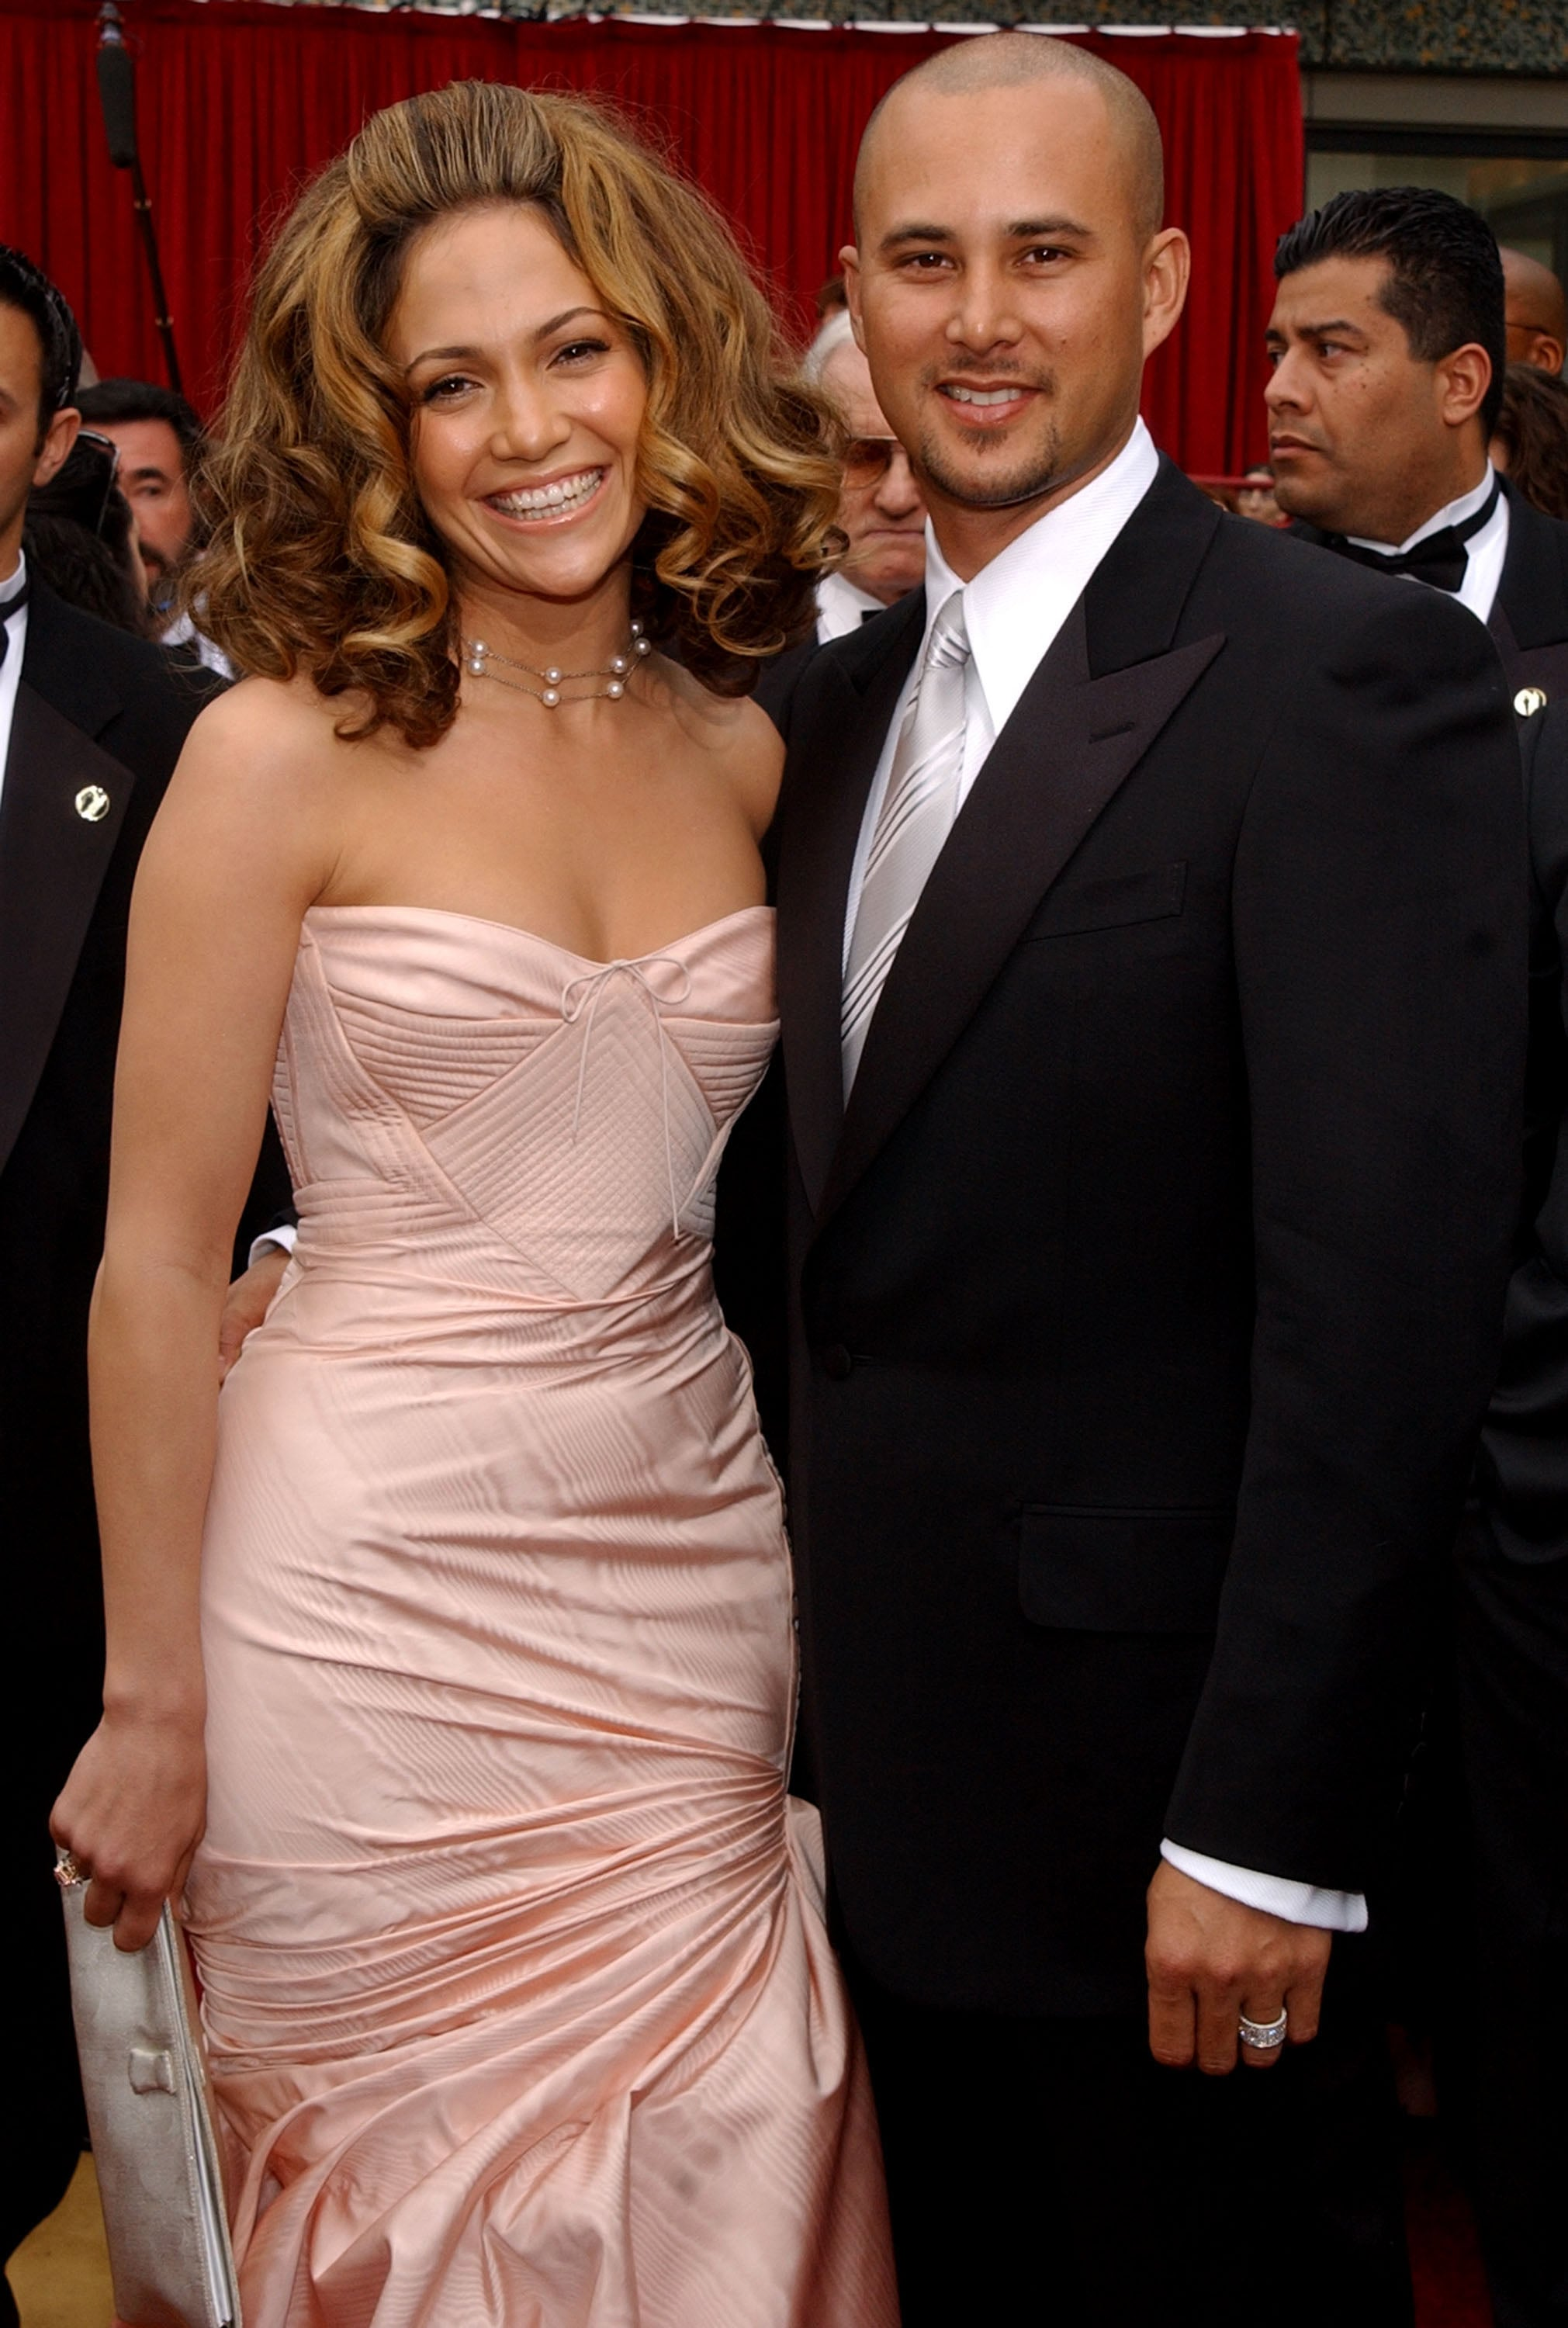 Who is jlo dating 2018